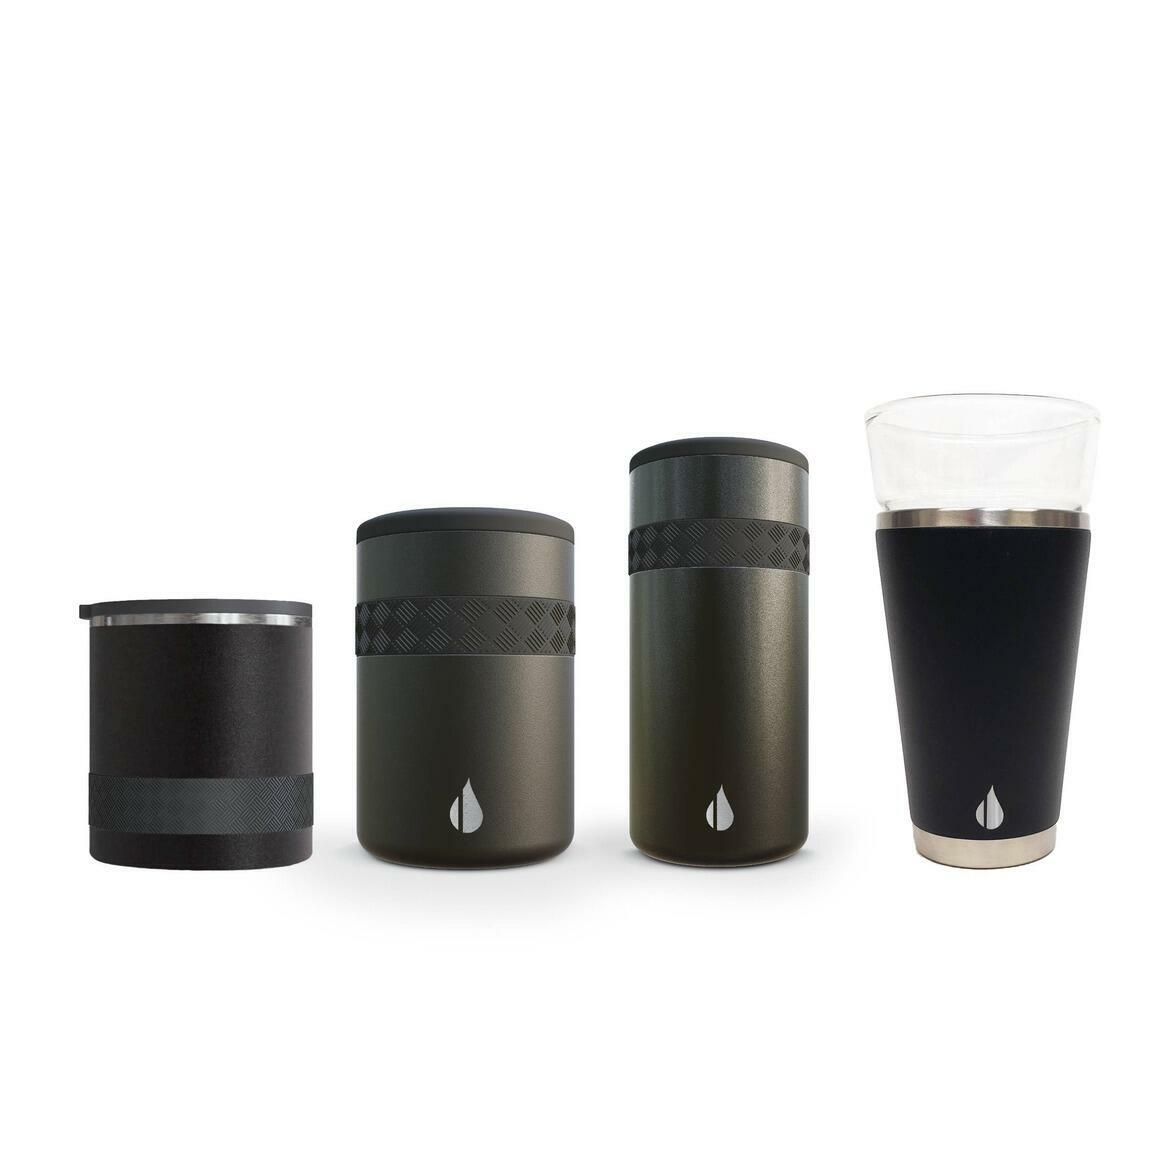 Sample Pack of Elemental Recess Drinkware Products - Black   Trada Marketplace